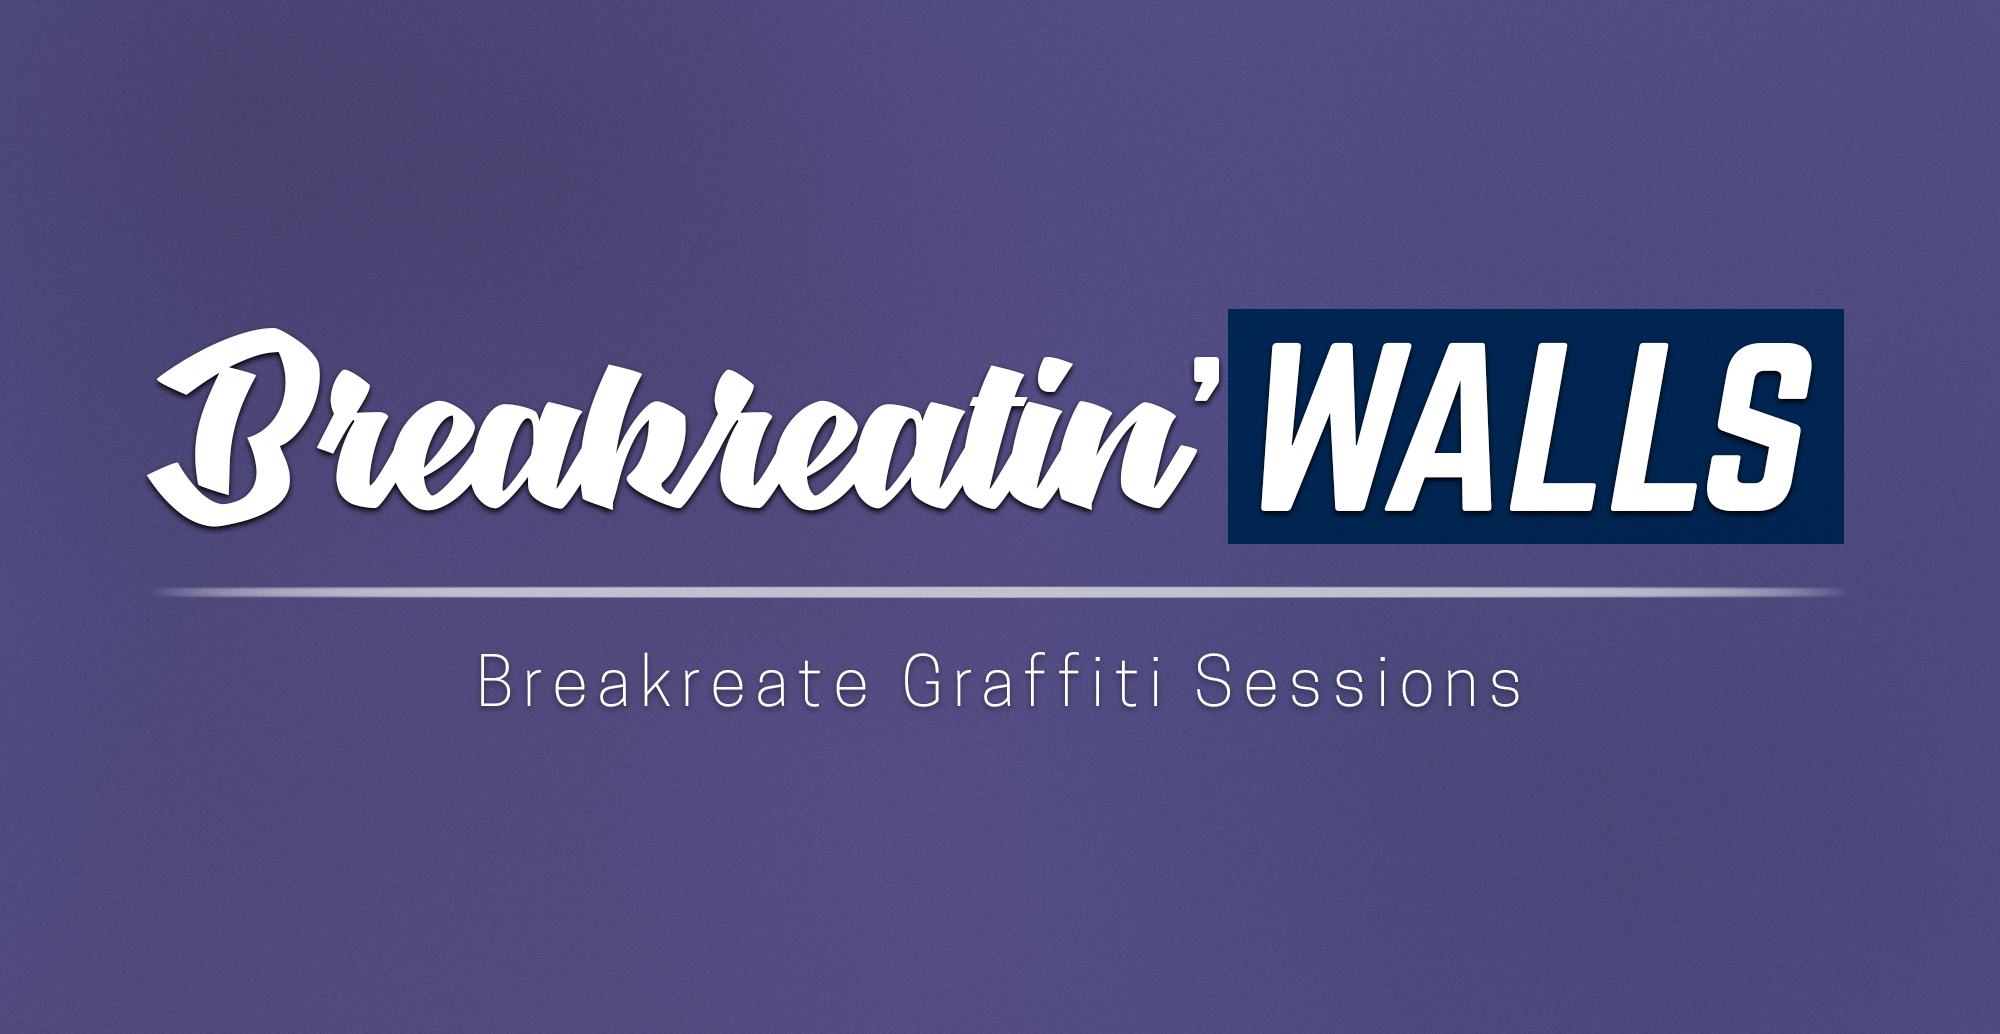 Breakreatin'Walls : The Artless Walls Revolution